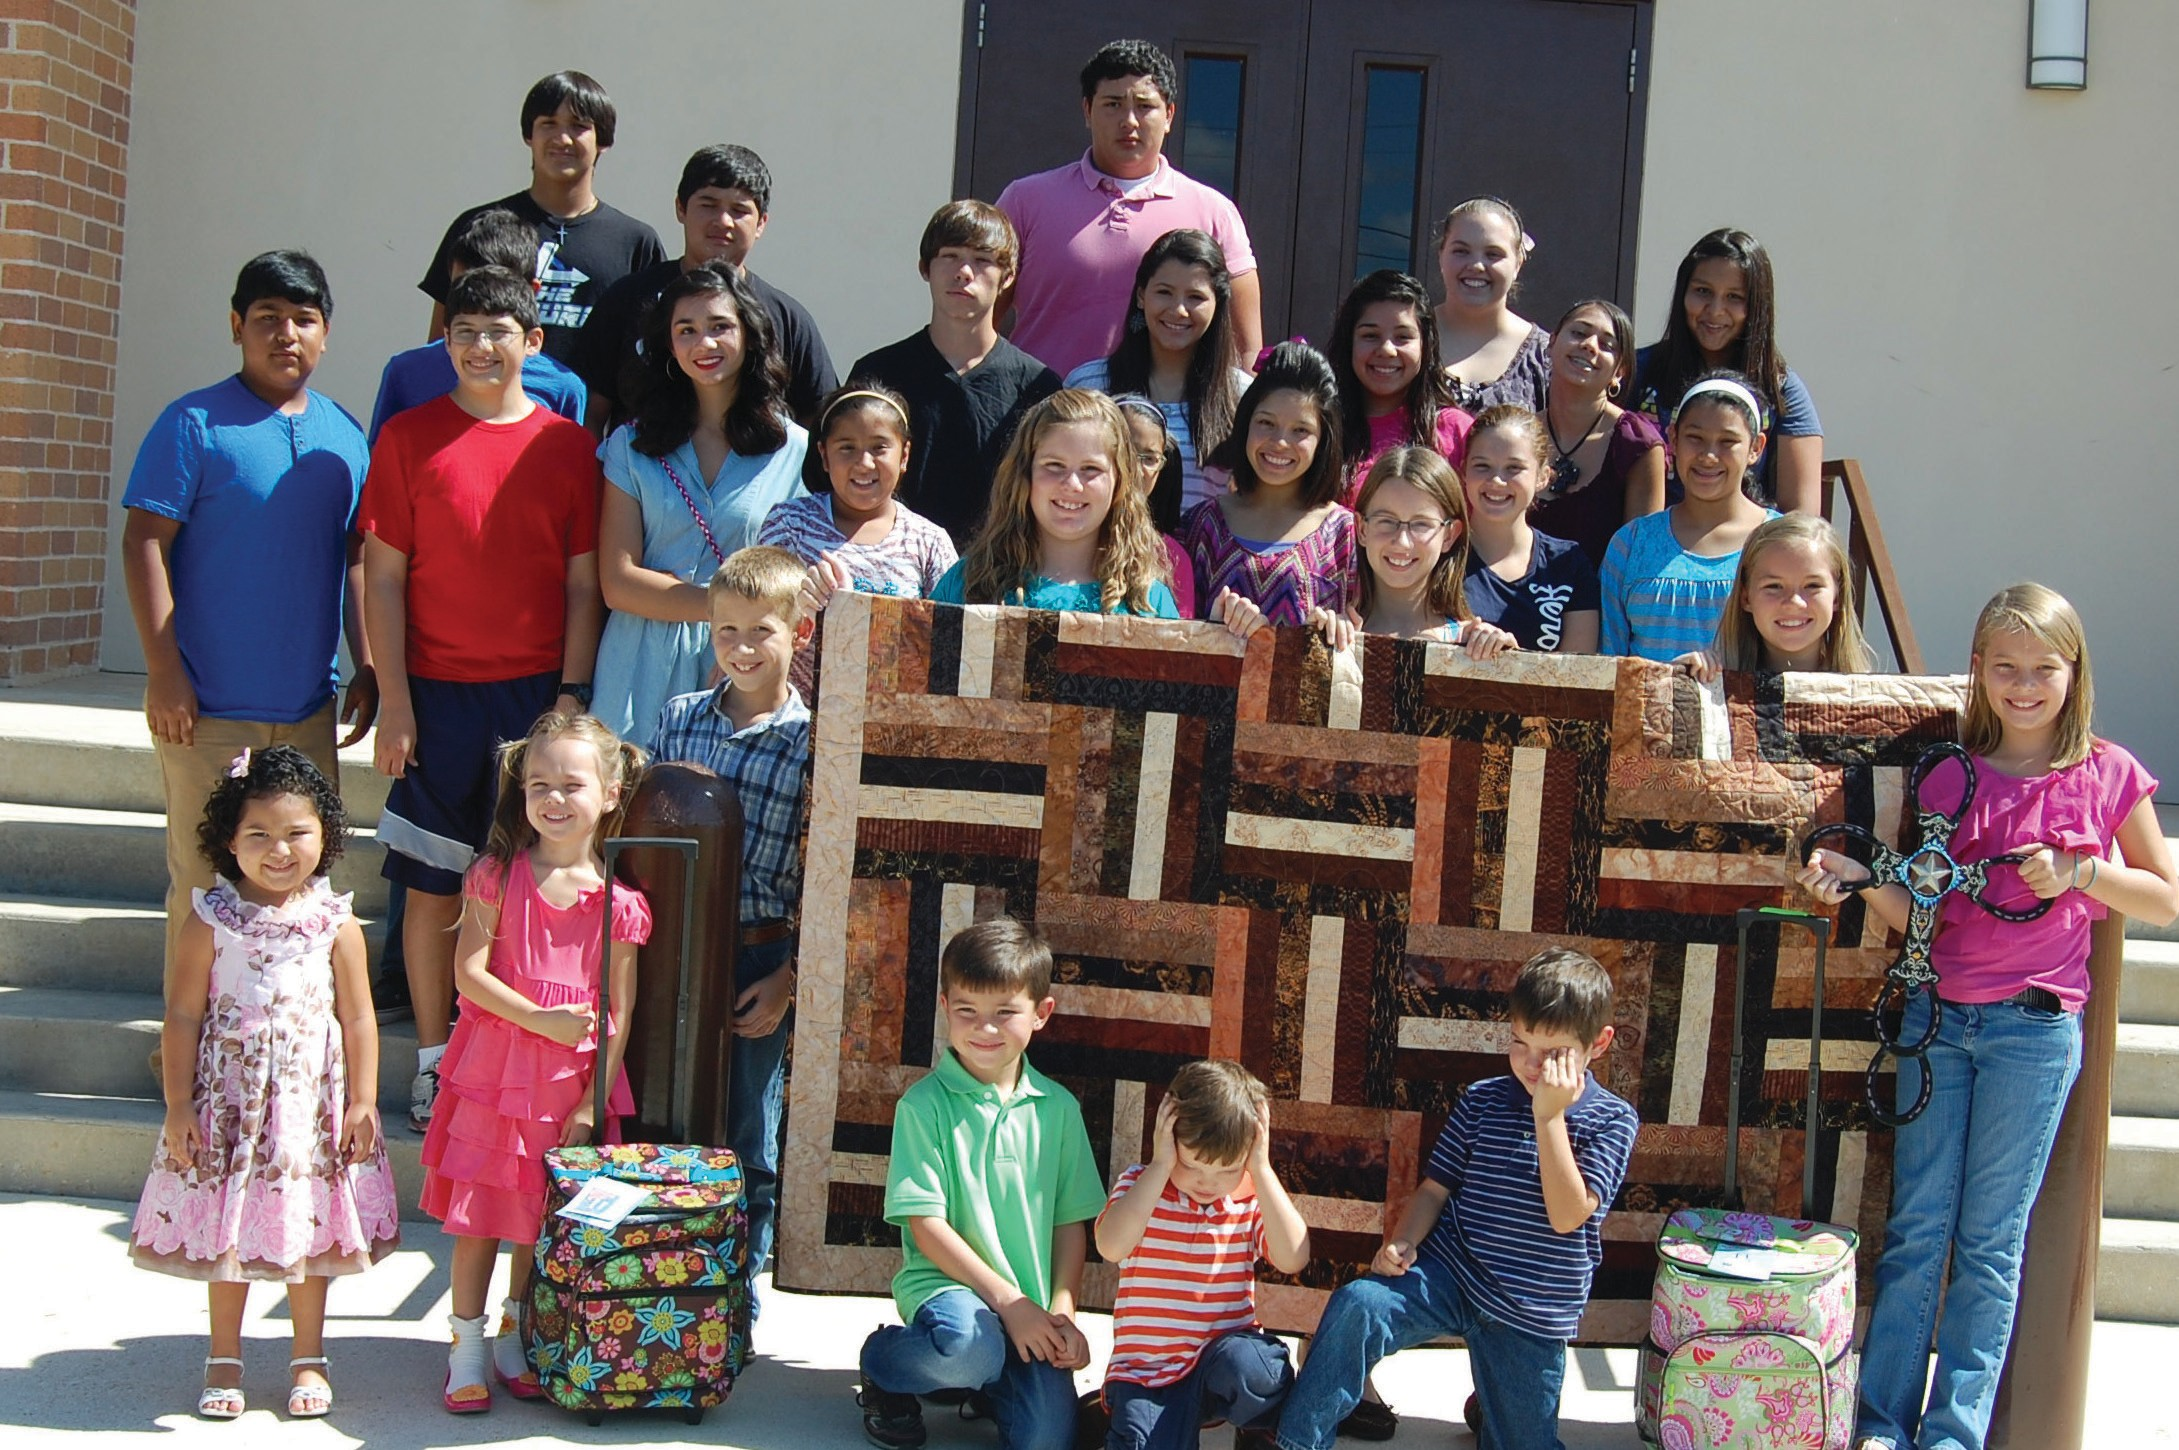 The youth of St. Matthew's Catholic Church invite everyone to their annual church picnic this Sunday. Lots of good food, fun and a great auction will be enjoyed. Serving starts at 11 a.m. and the barbecue plates are only $7. Bid on the beautiful quilt displayed and lots more items.